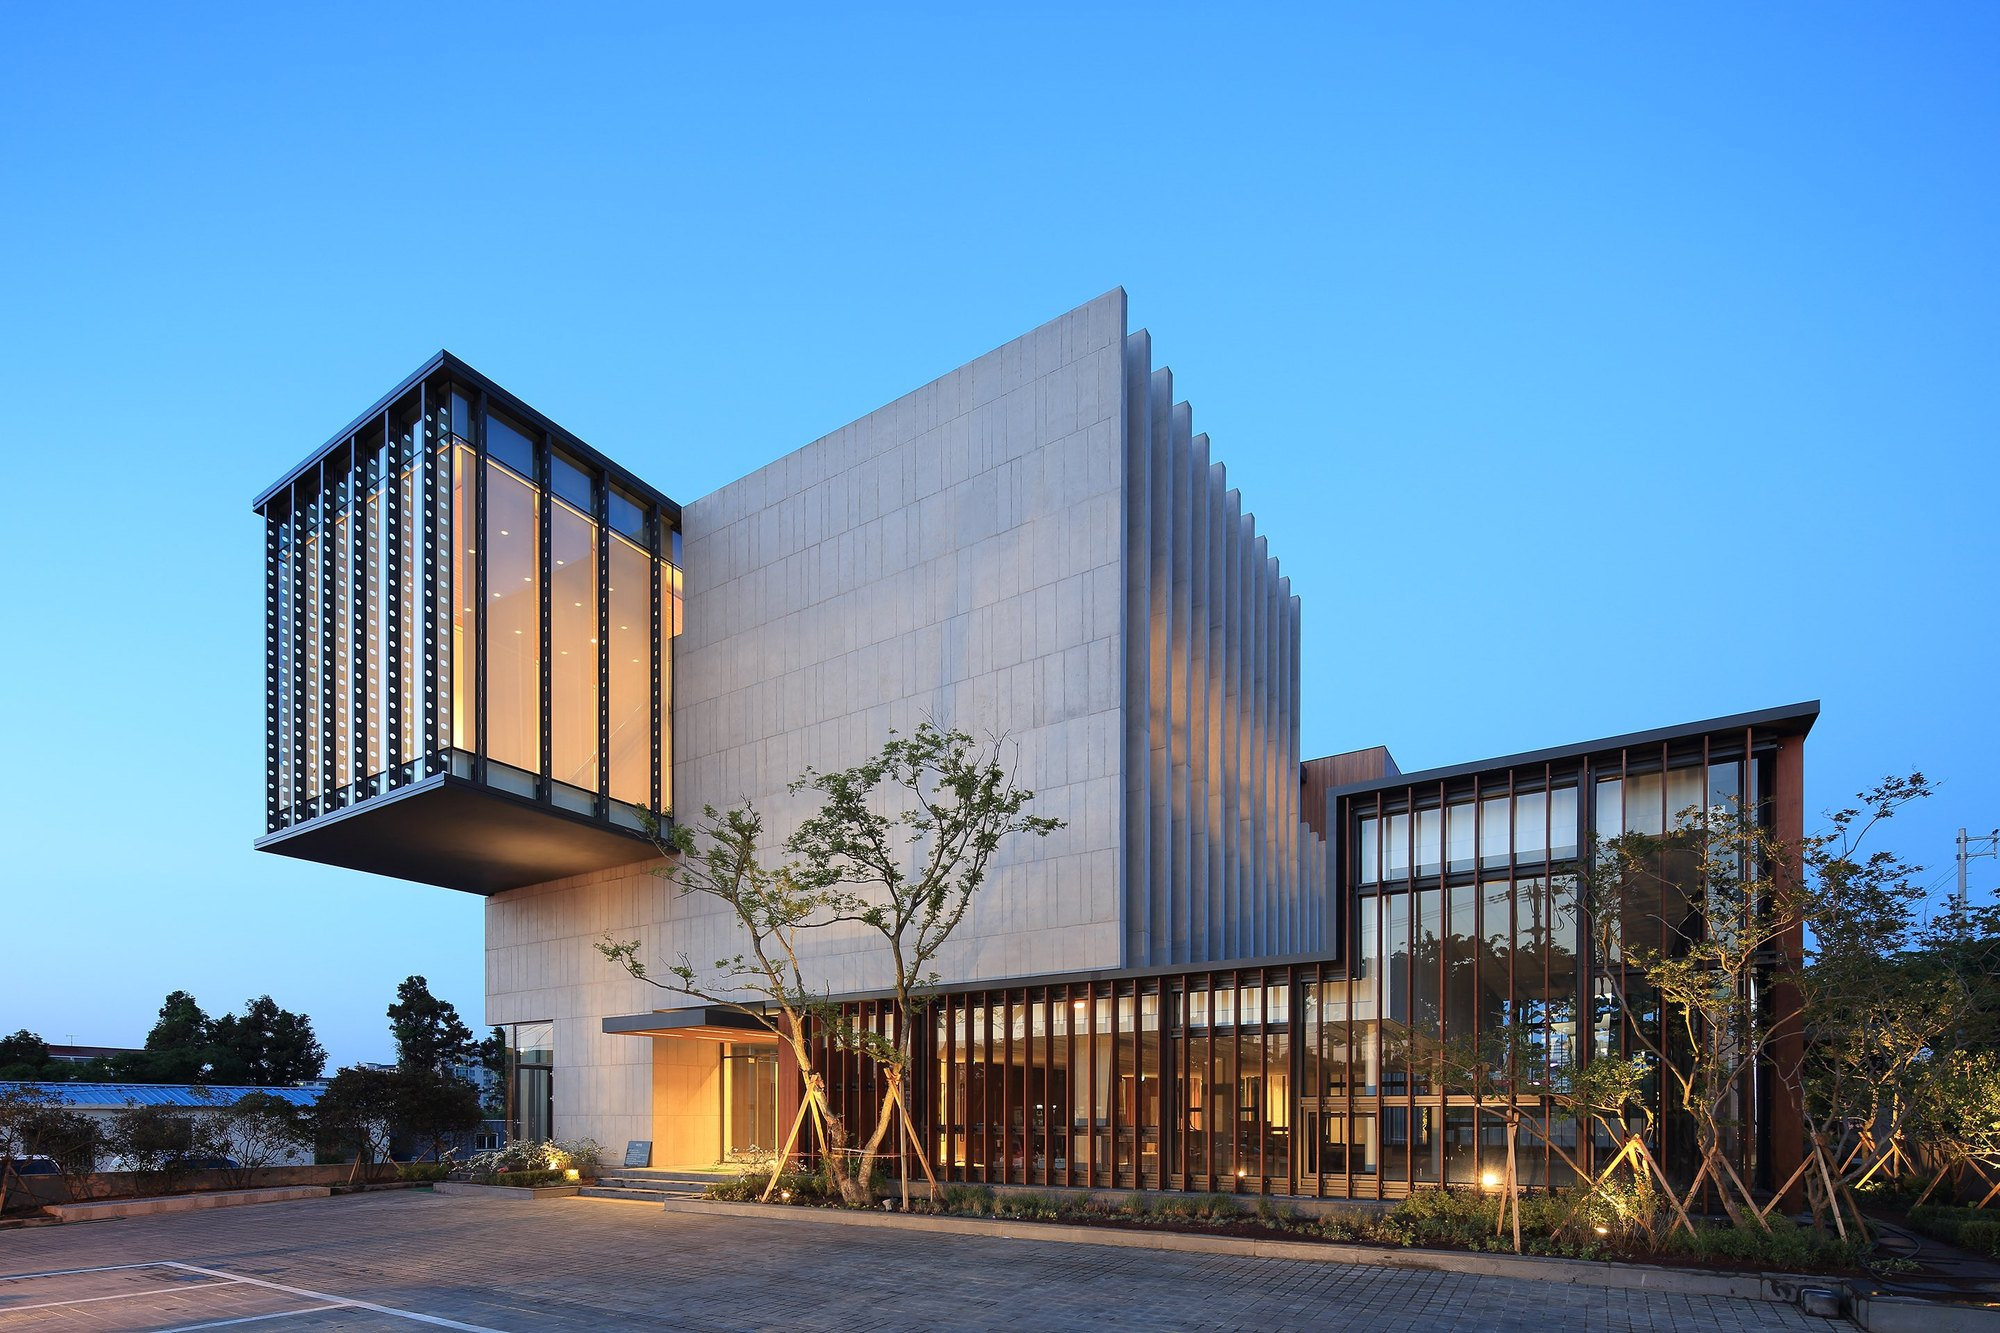 Jung clinic kim seunghoy seoul national university for Architecture 54